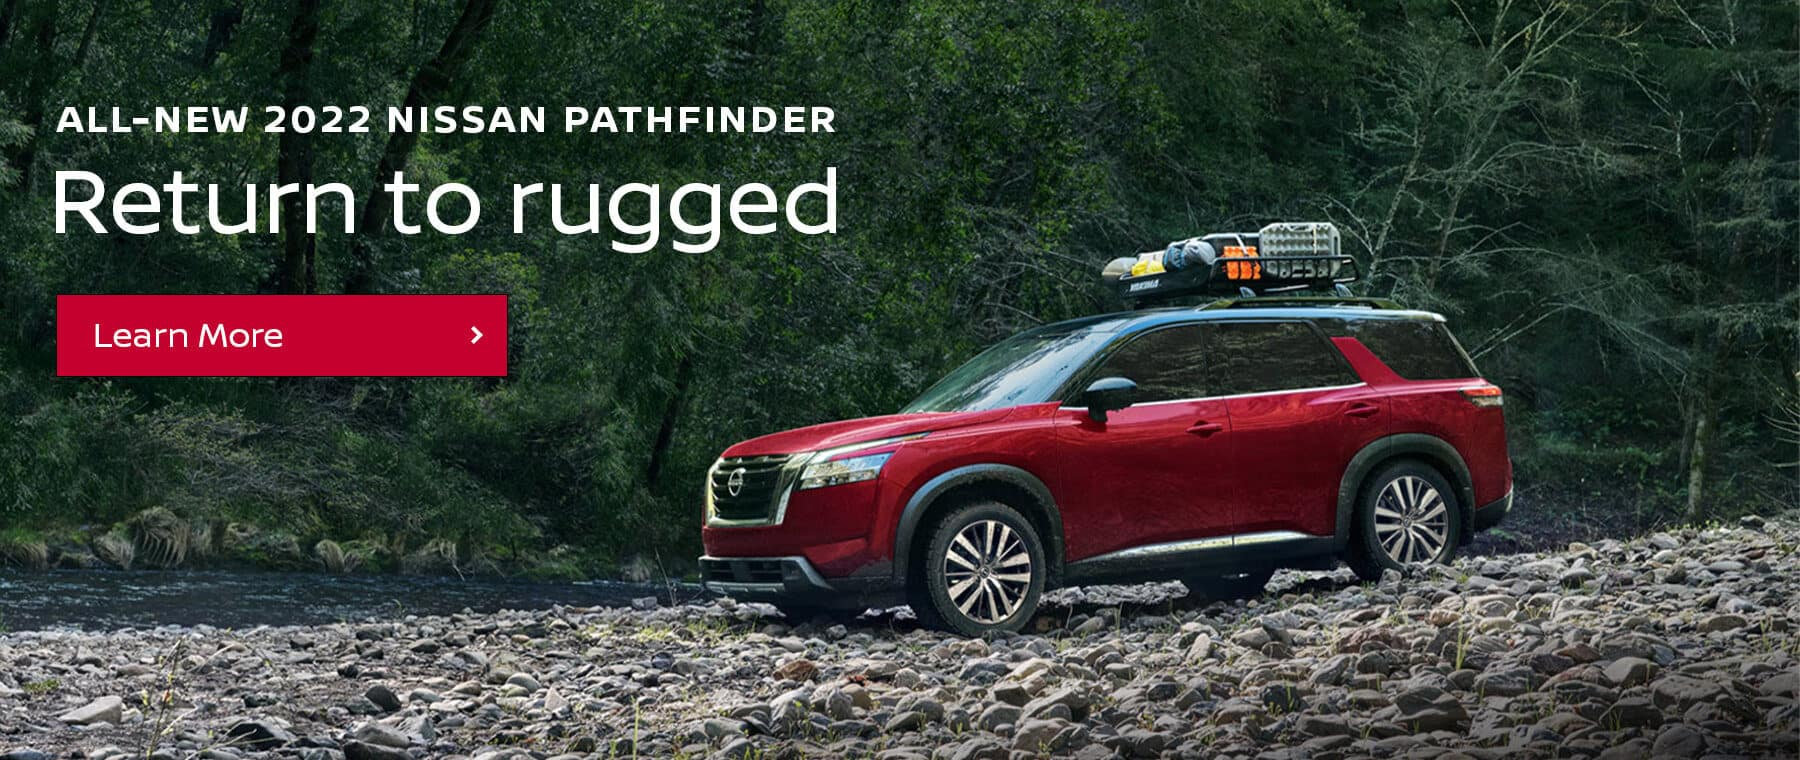 Return to rugged in the All-New 2022 Pathfinder near Clarksville, Indiana